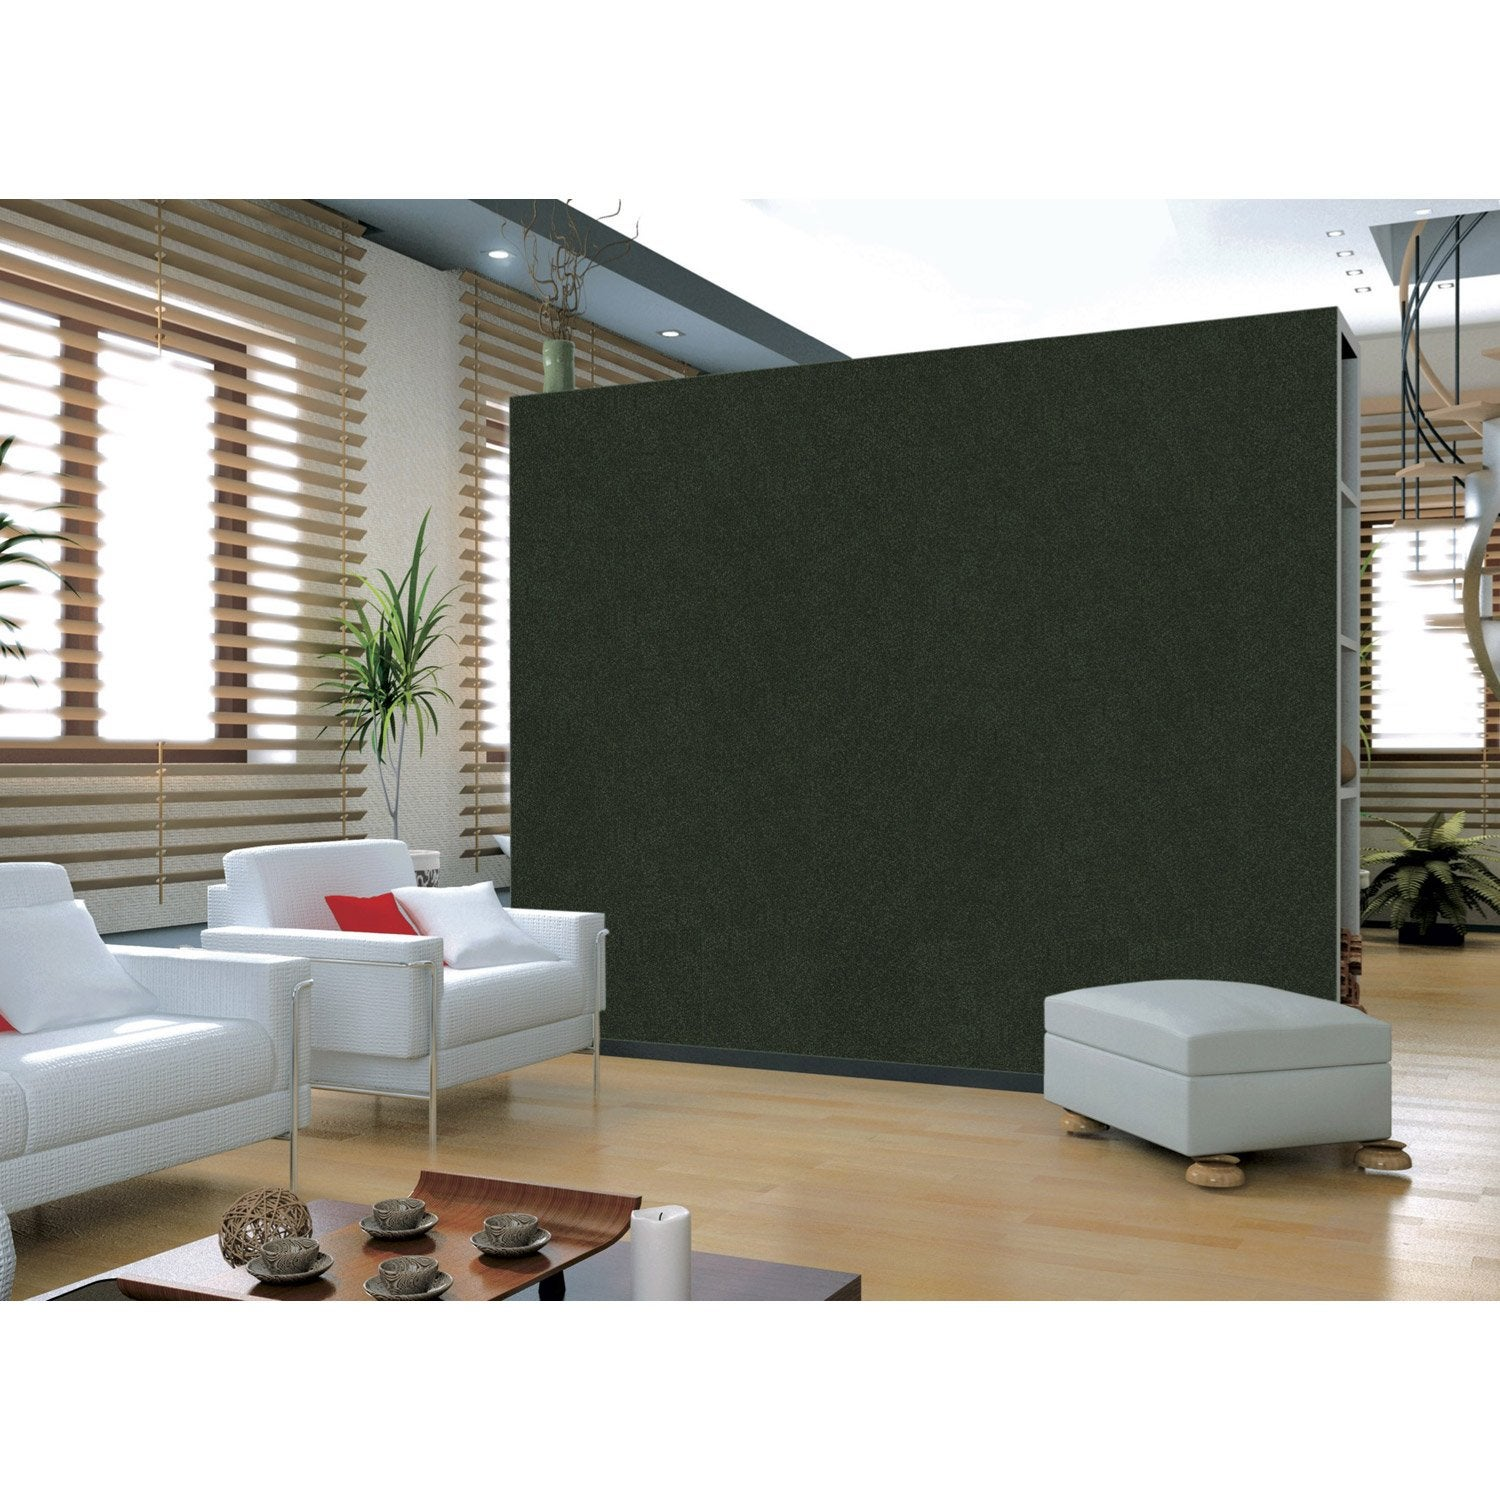 dalle de li ge murale marron x cm leroy merlin. Black Bedroom Furniture Sets. Home Design Ideas